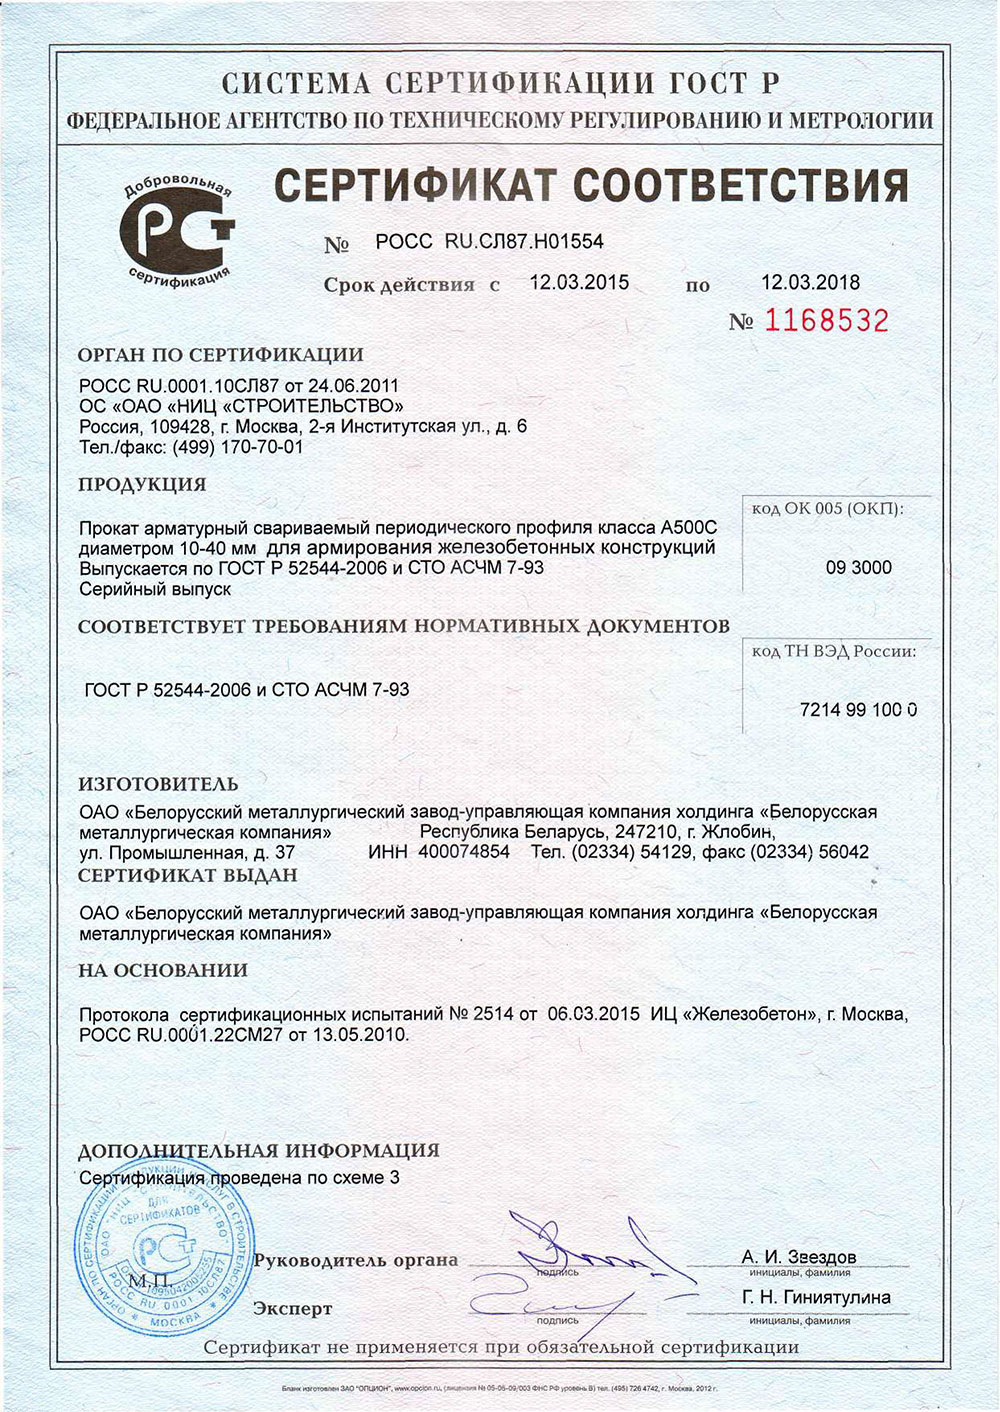 Certificate of system GOST К No.ROSS BY.SL87.HO1554 for production of light section indented steel bars thermo-mechanically strengthened of At800 class diameter 10-14 mm in compliance with State Standard GOST R 52544-2006 and STO ASTM 7-93.